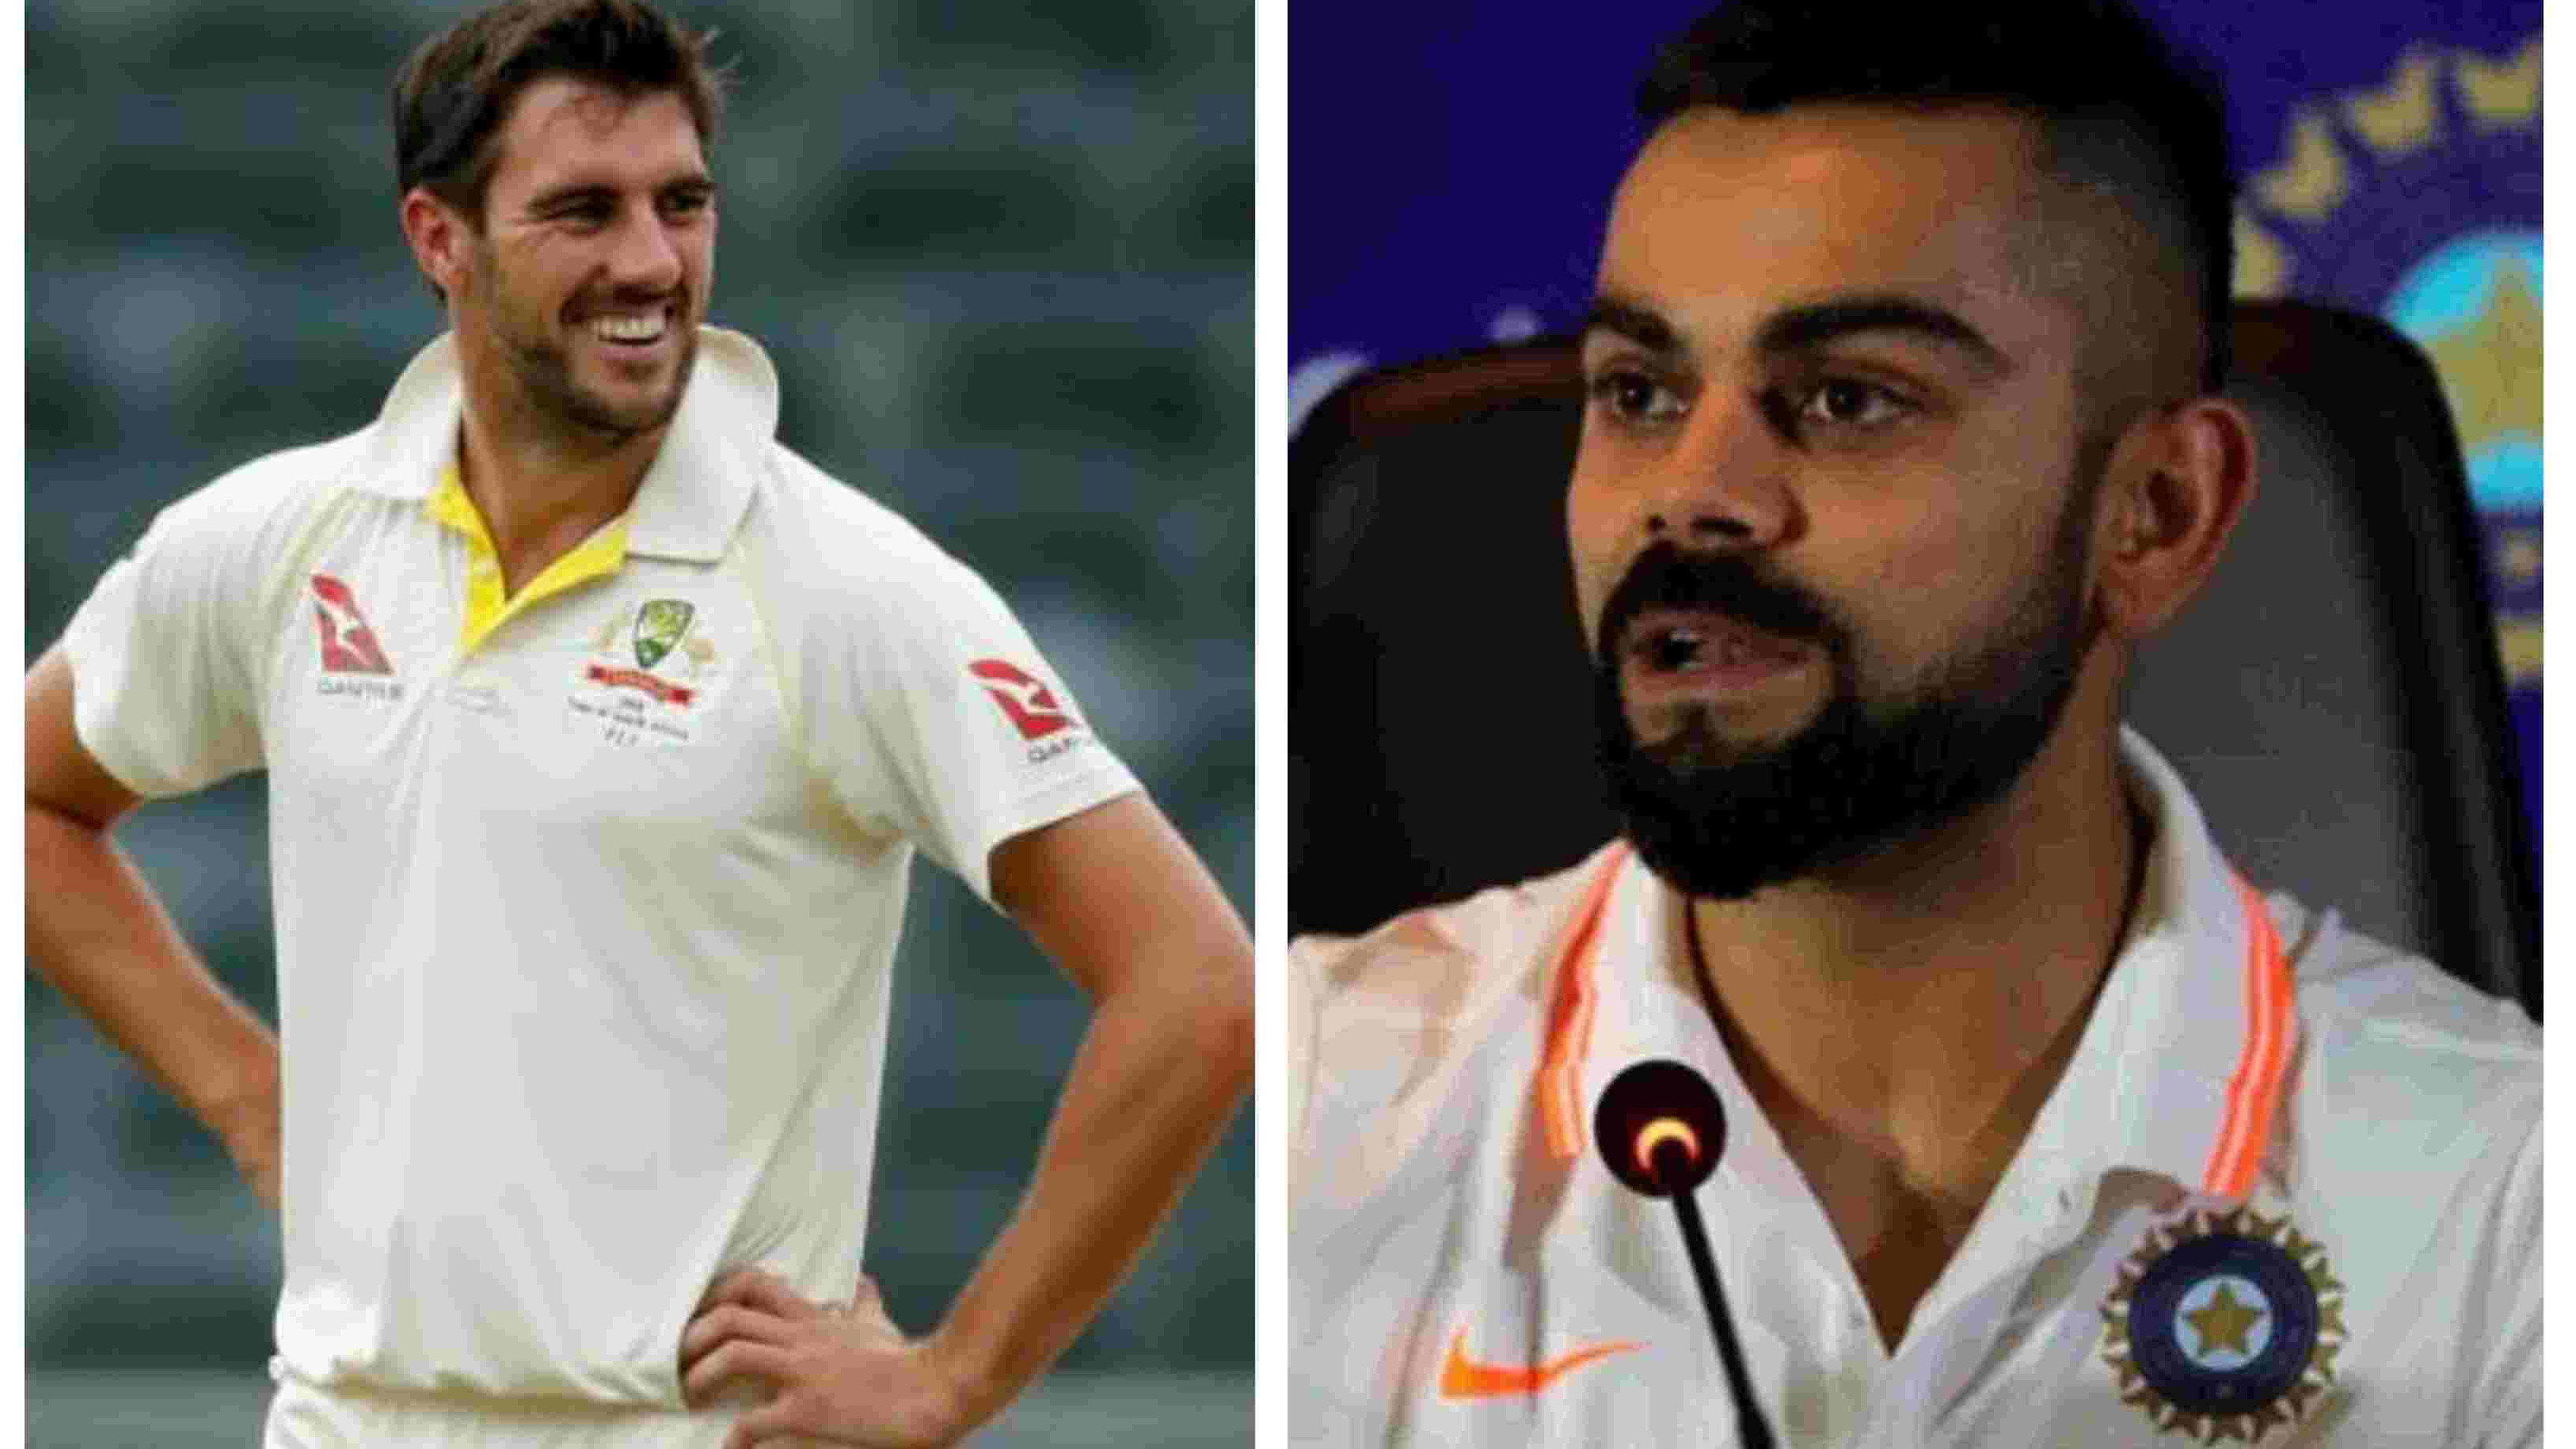 AUS v IND 2018-19: I will be surprised if Virat Kohli doesn't get into confrontations, says Pat Cummins